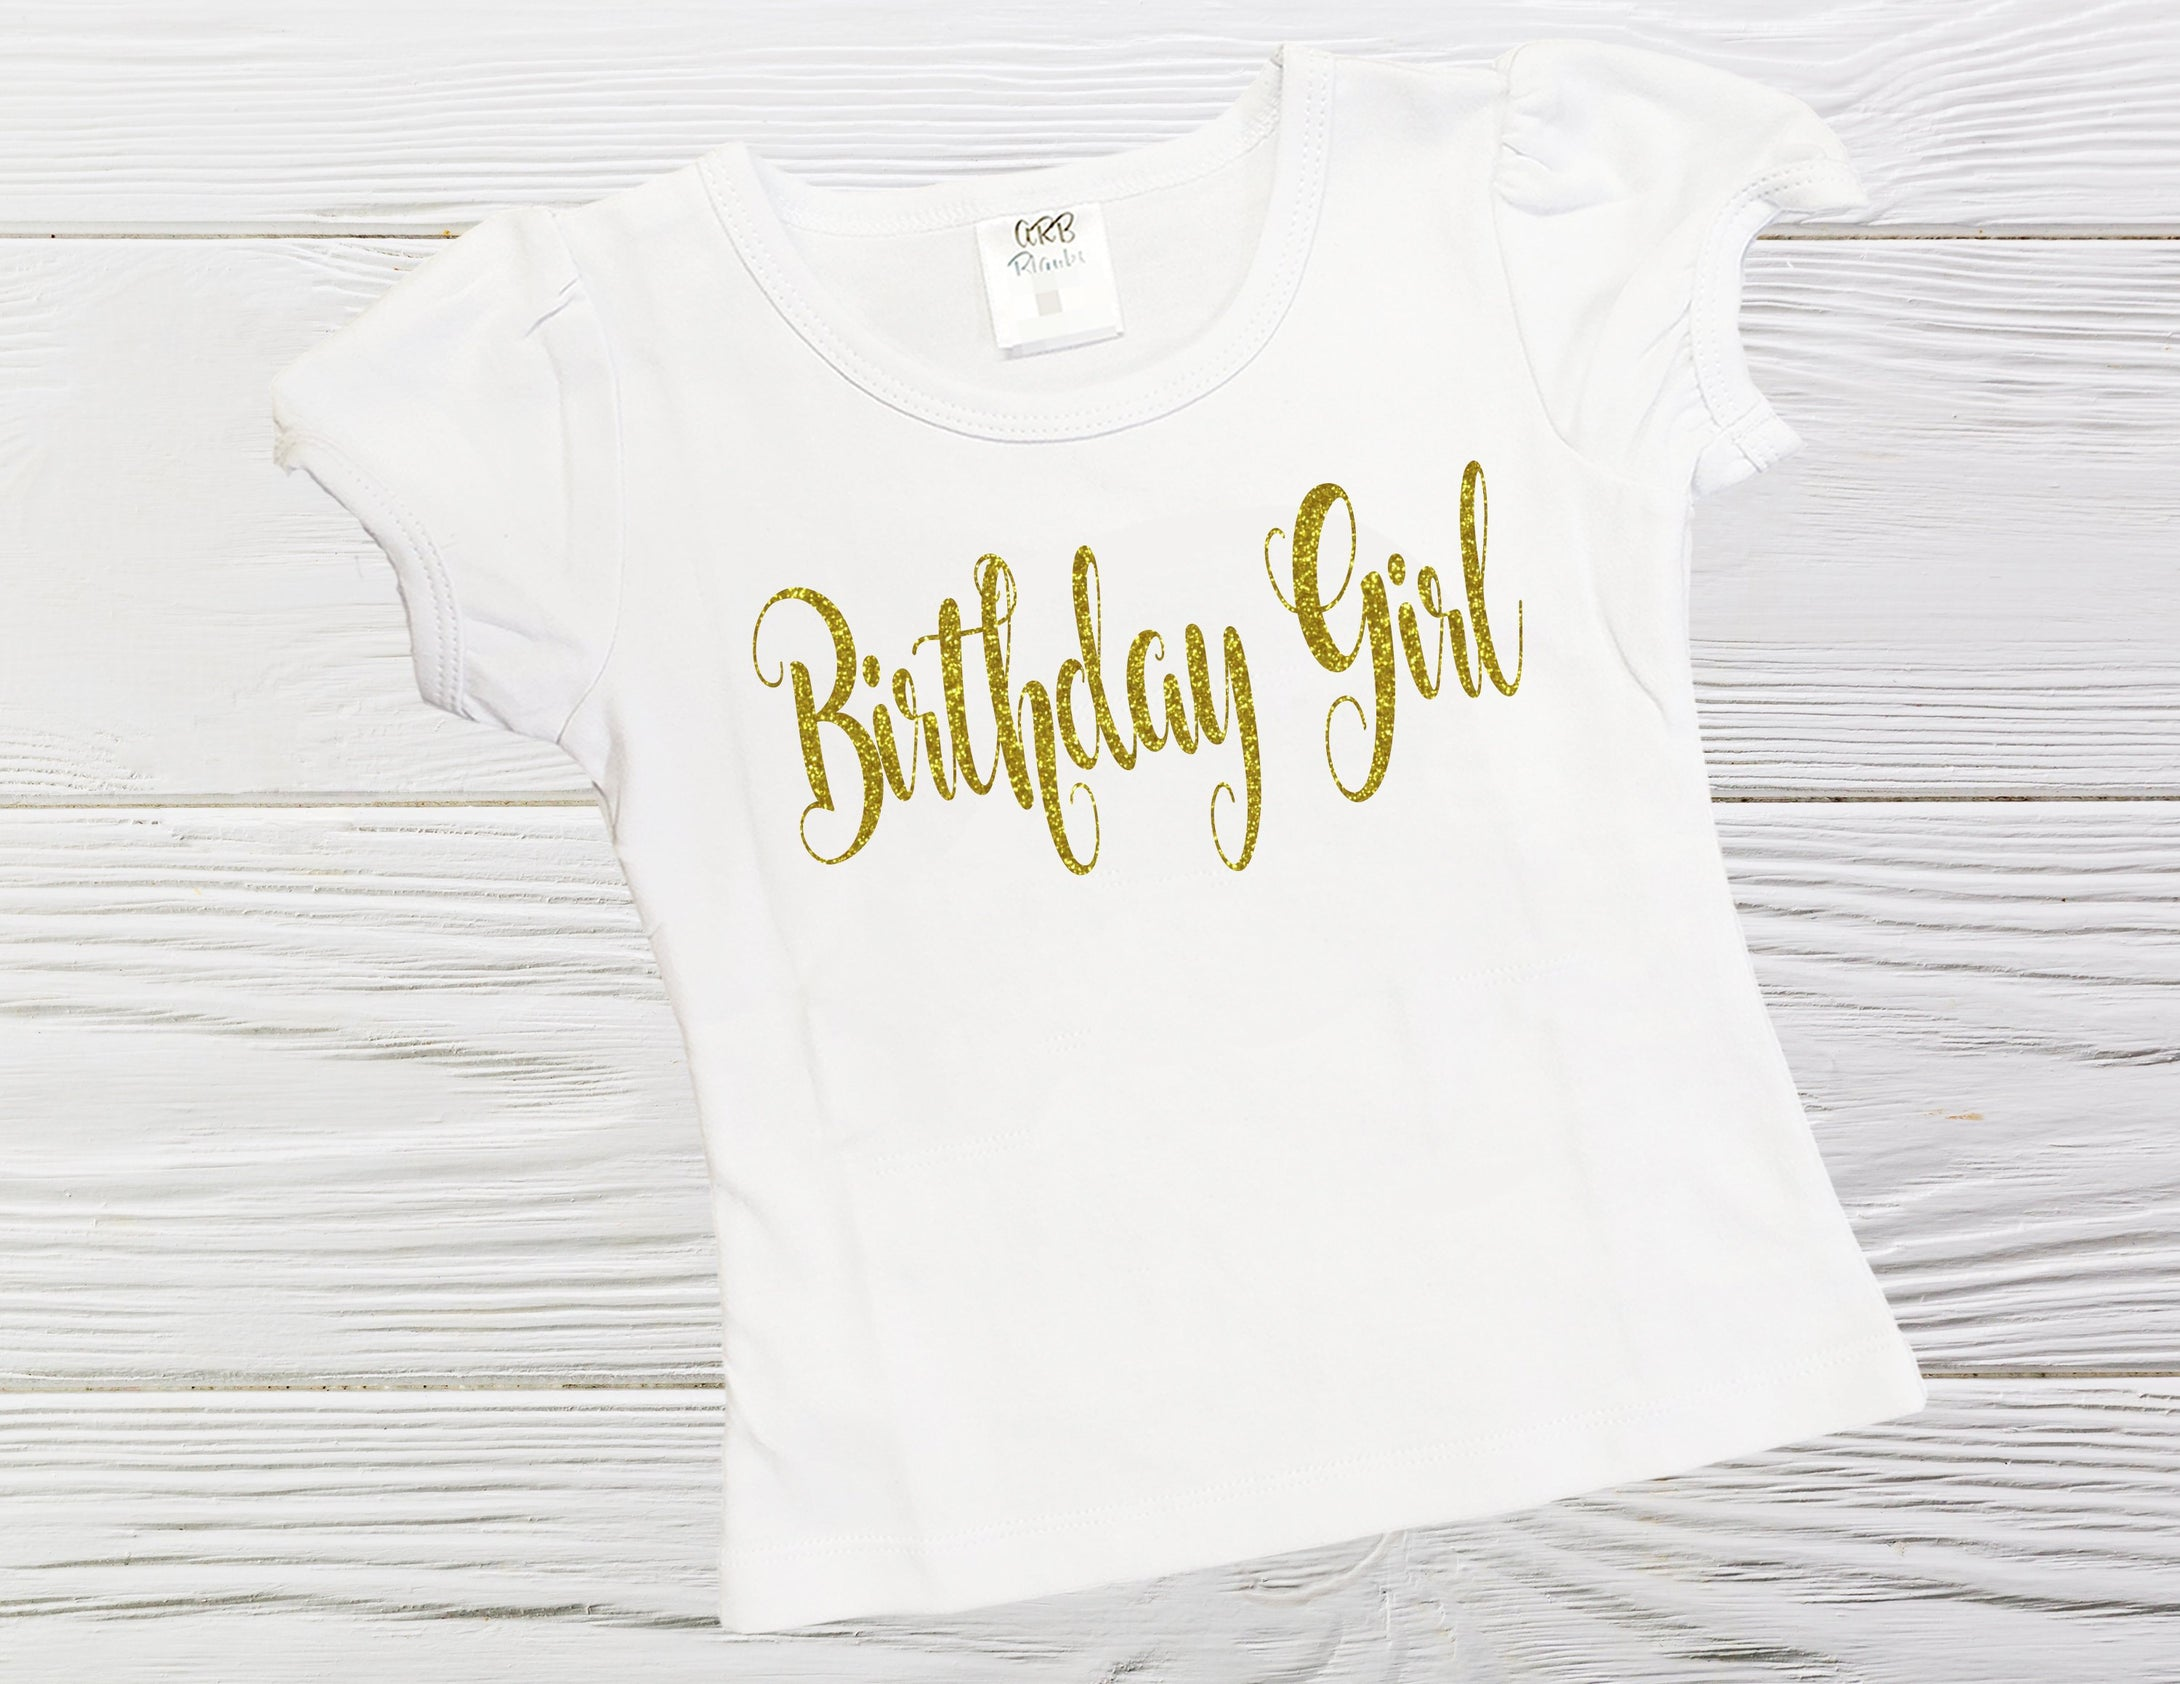 BIRTHDAY GIRT  SHIRT - Personalized glitter shirt - Graphic birthday girl shirt - Girls shirts - Custom shirts